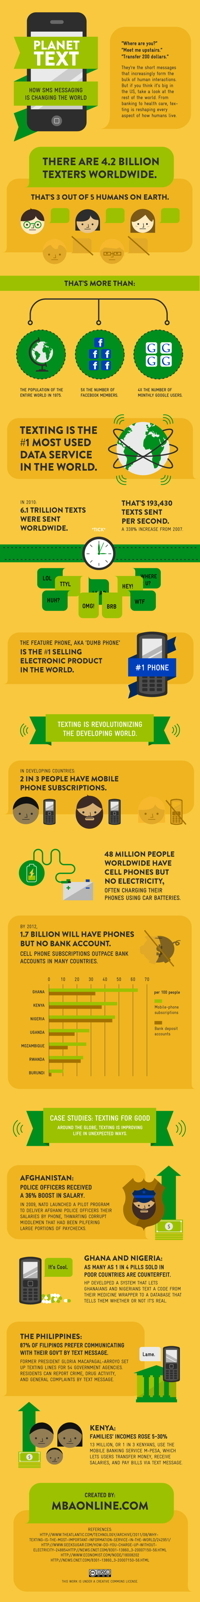 How texting is changing the world [infographic] - Holy Kaw! | Collaborative Content-Curation: new Forms of Reading & Writing #curation #journalism #education #e-learning | Scoop.it